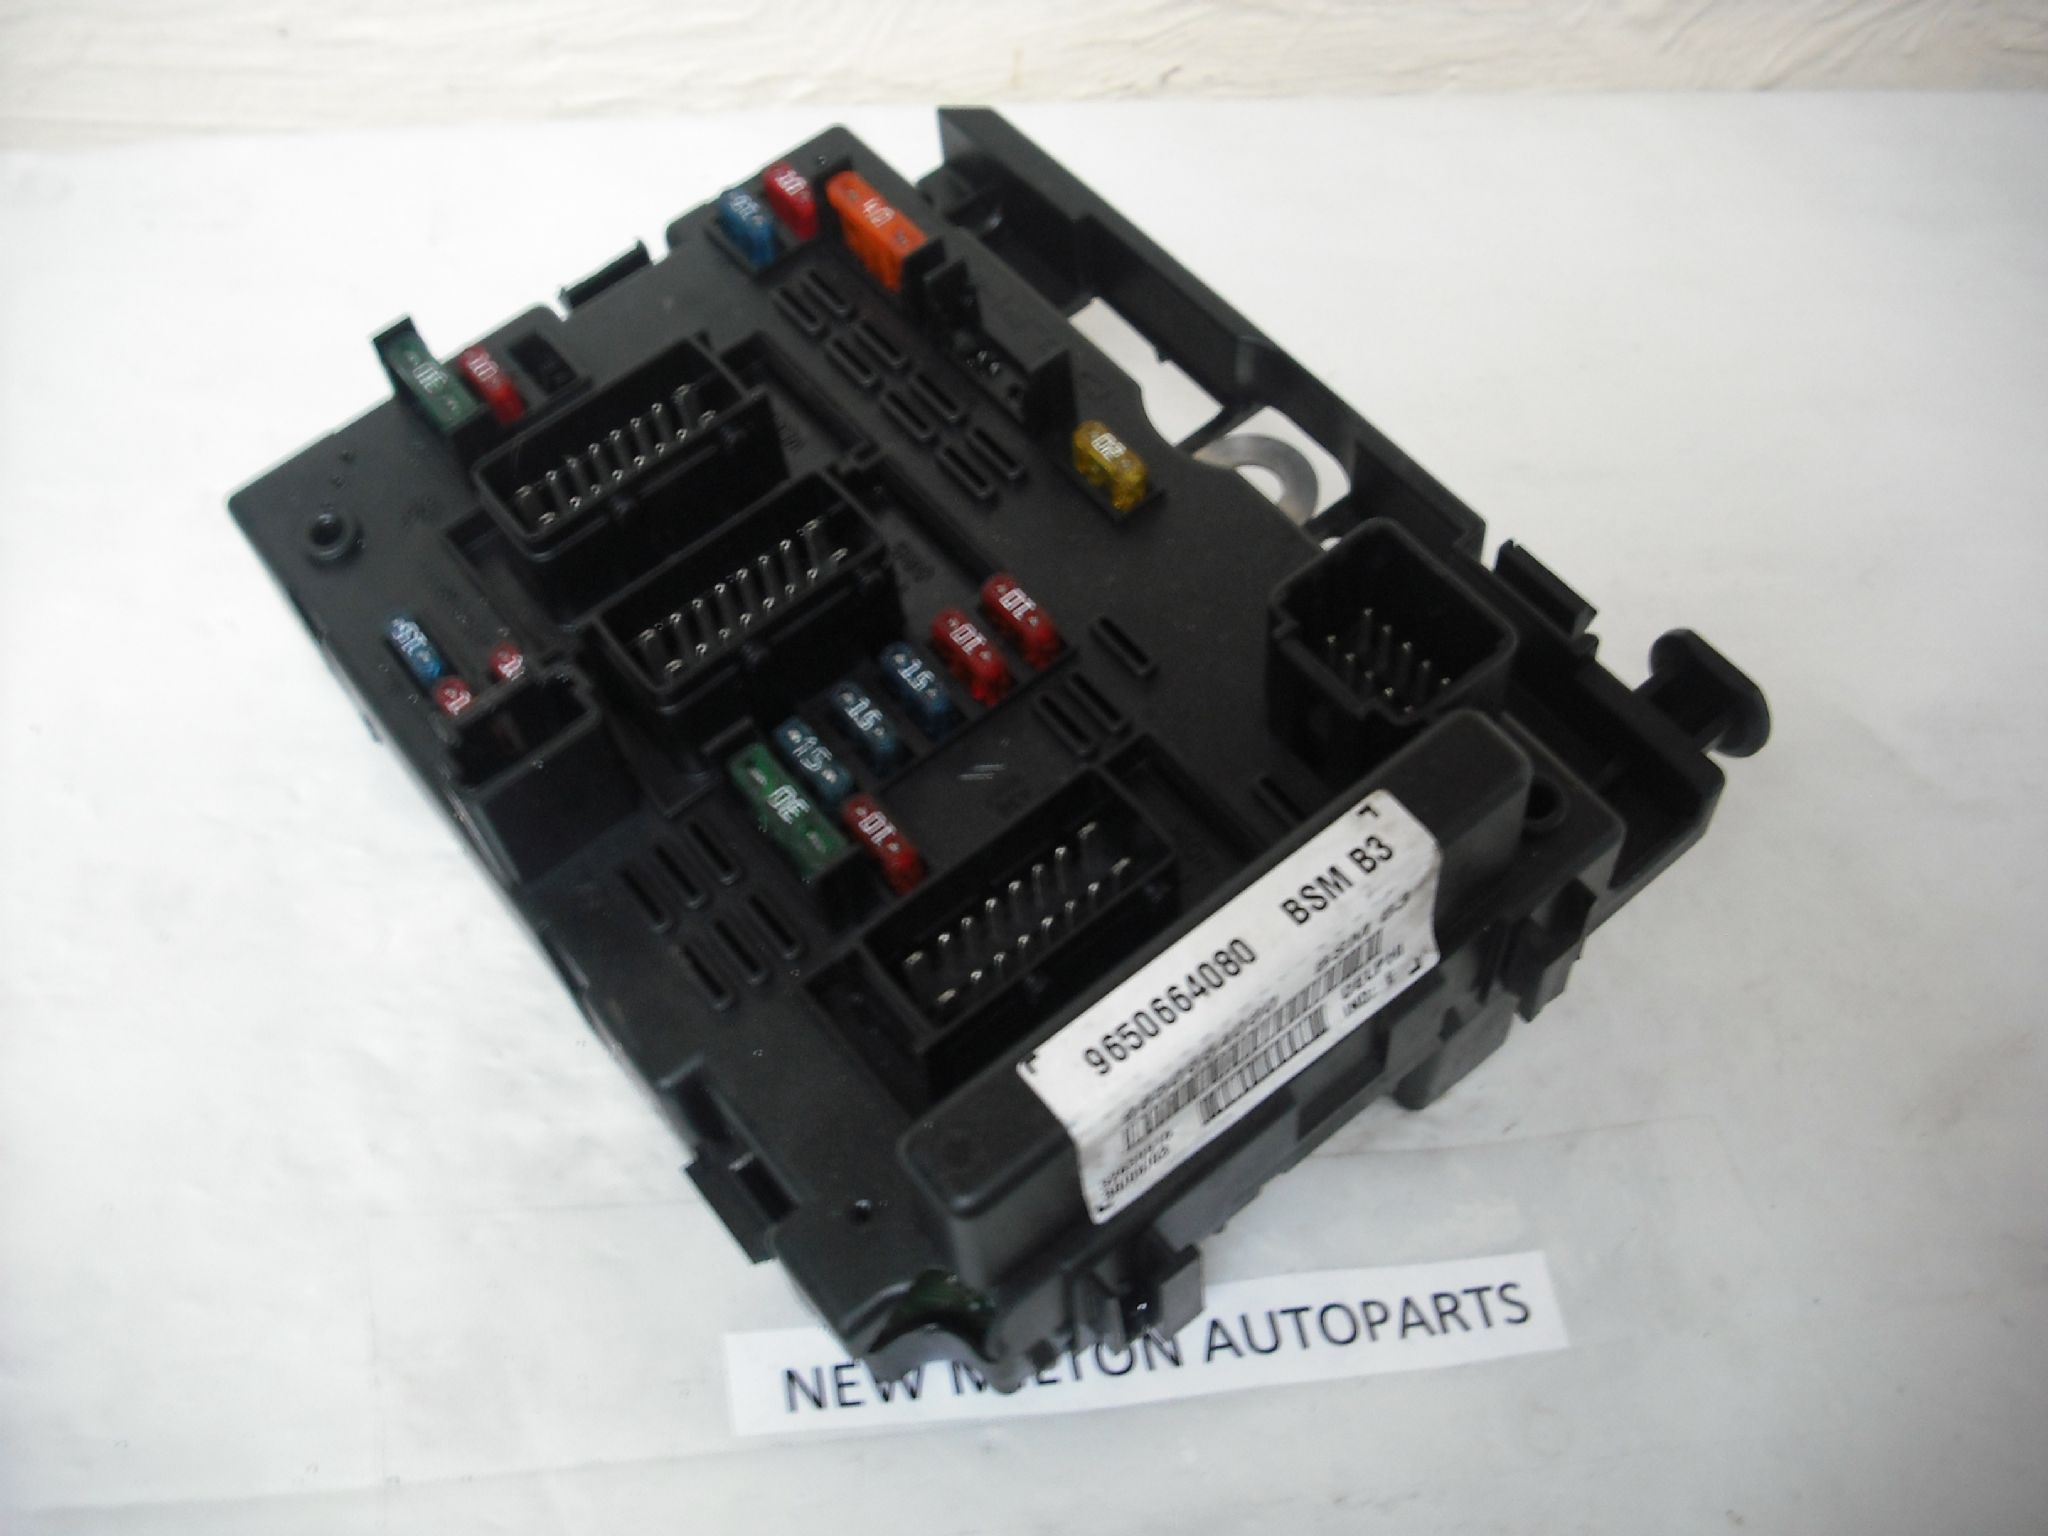 sorry out of stock ................. citroen c8 peugeot 807 fuse box controller 9650664080 bsm b3 delphi 6197 p delphi fuse box 2002 ford ranger fuse box diagram \u2022 wiring Automotive Fuse Box Holder at creativeand.co